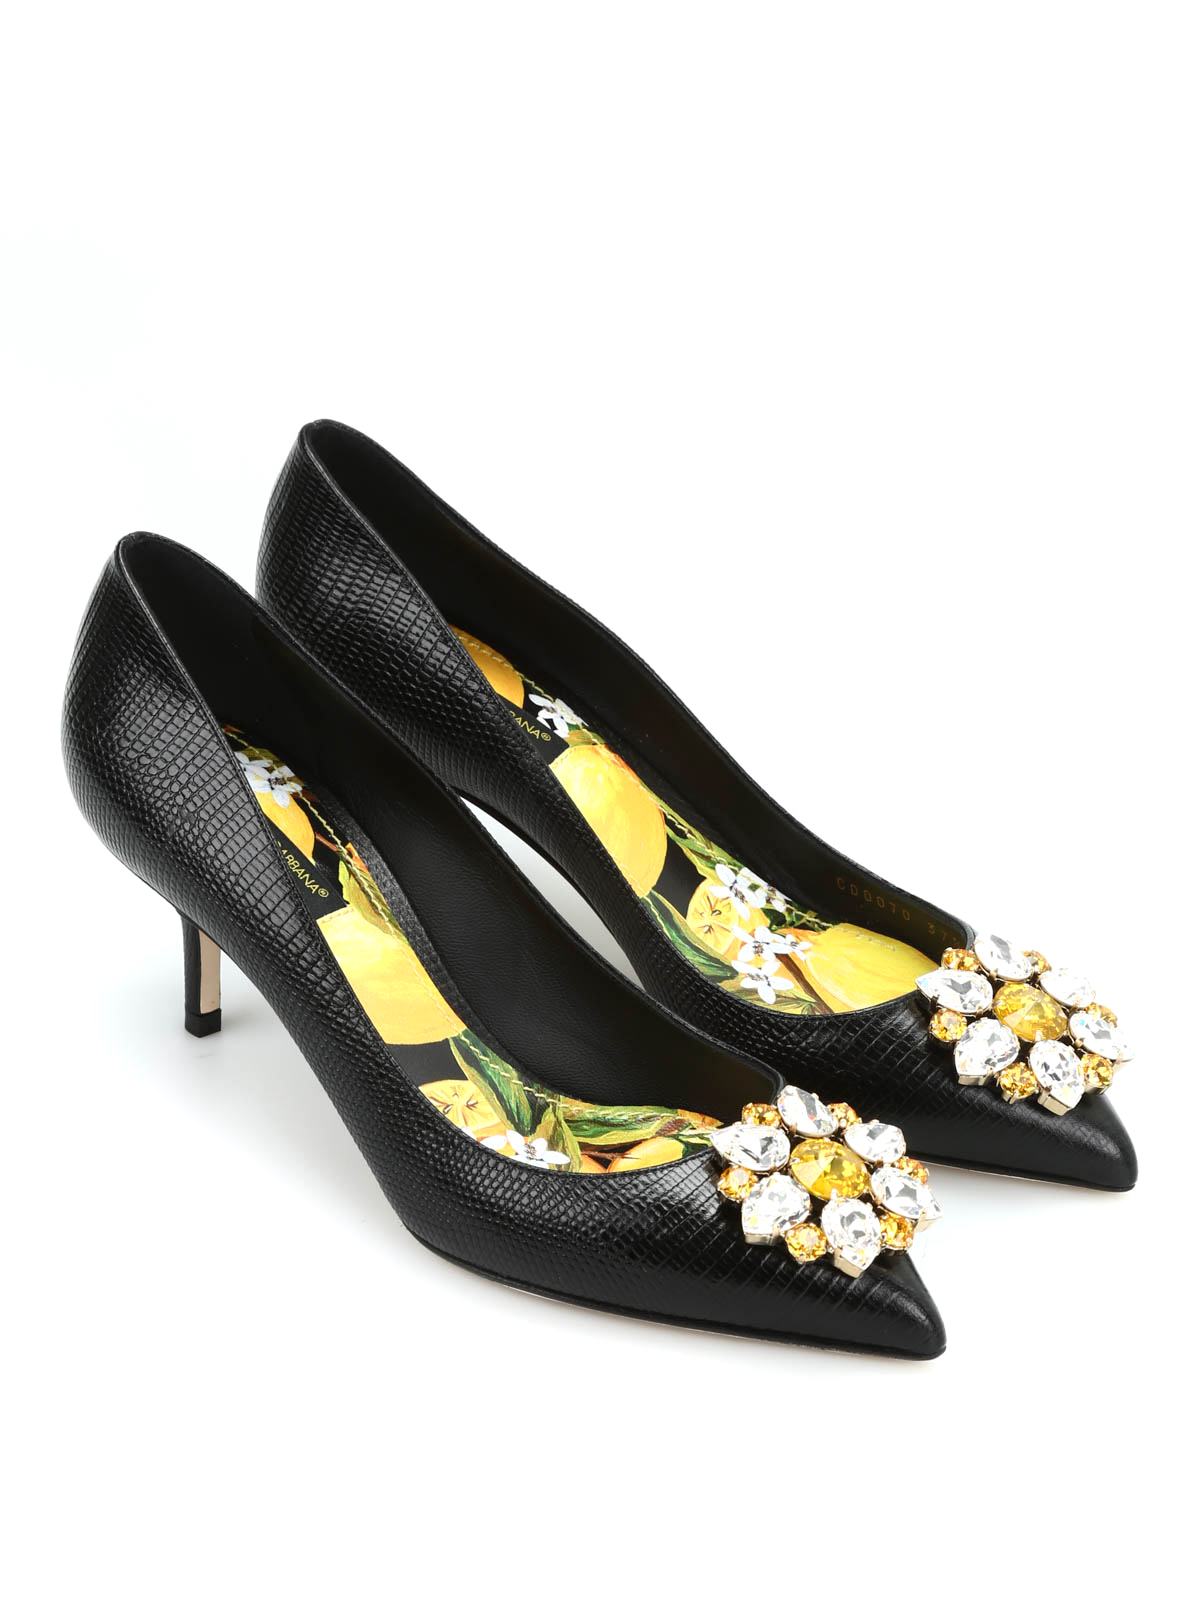 leather pumps by dolce gabbana court shoes